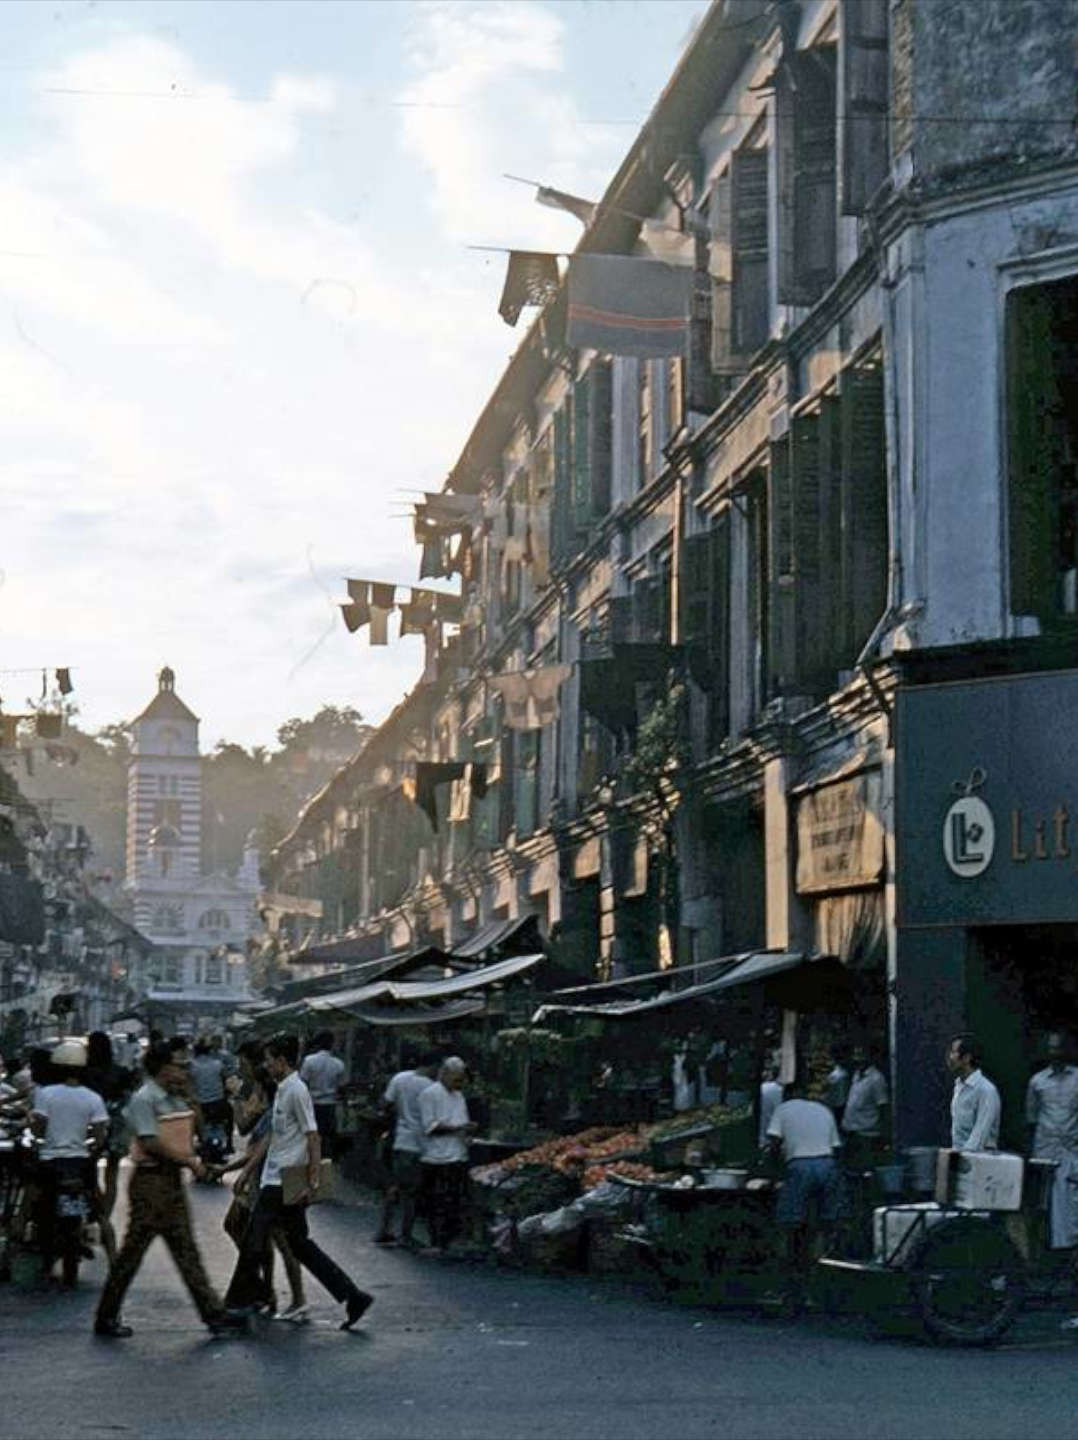 Shophouses along the old Hock Lam street in Singapore during the 1960s